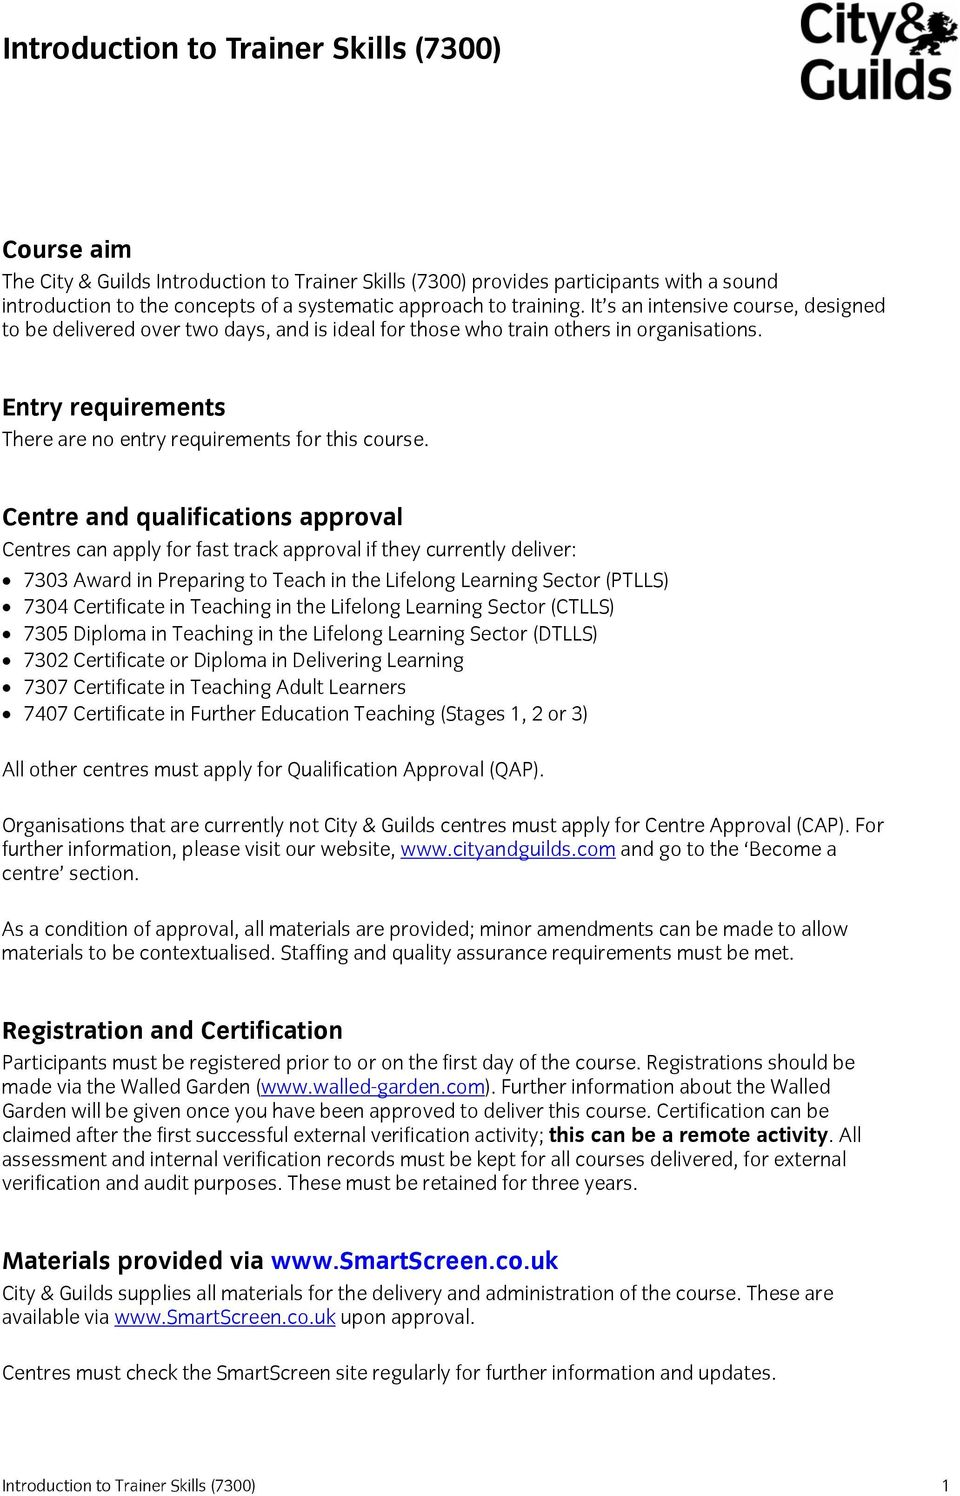 Entry requirements There are no entry requirements for this course.